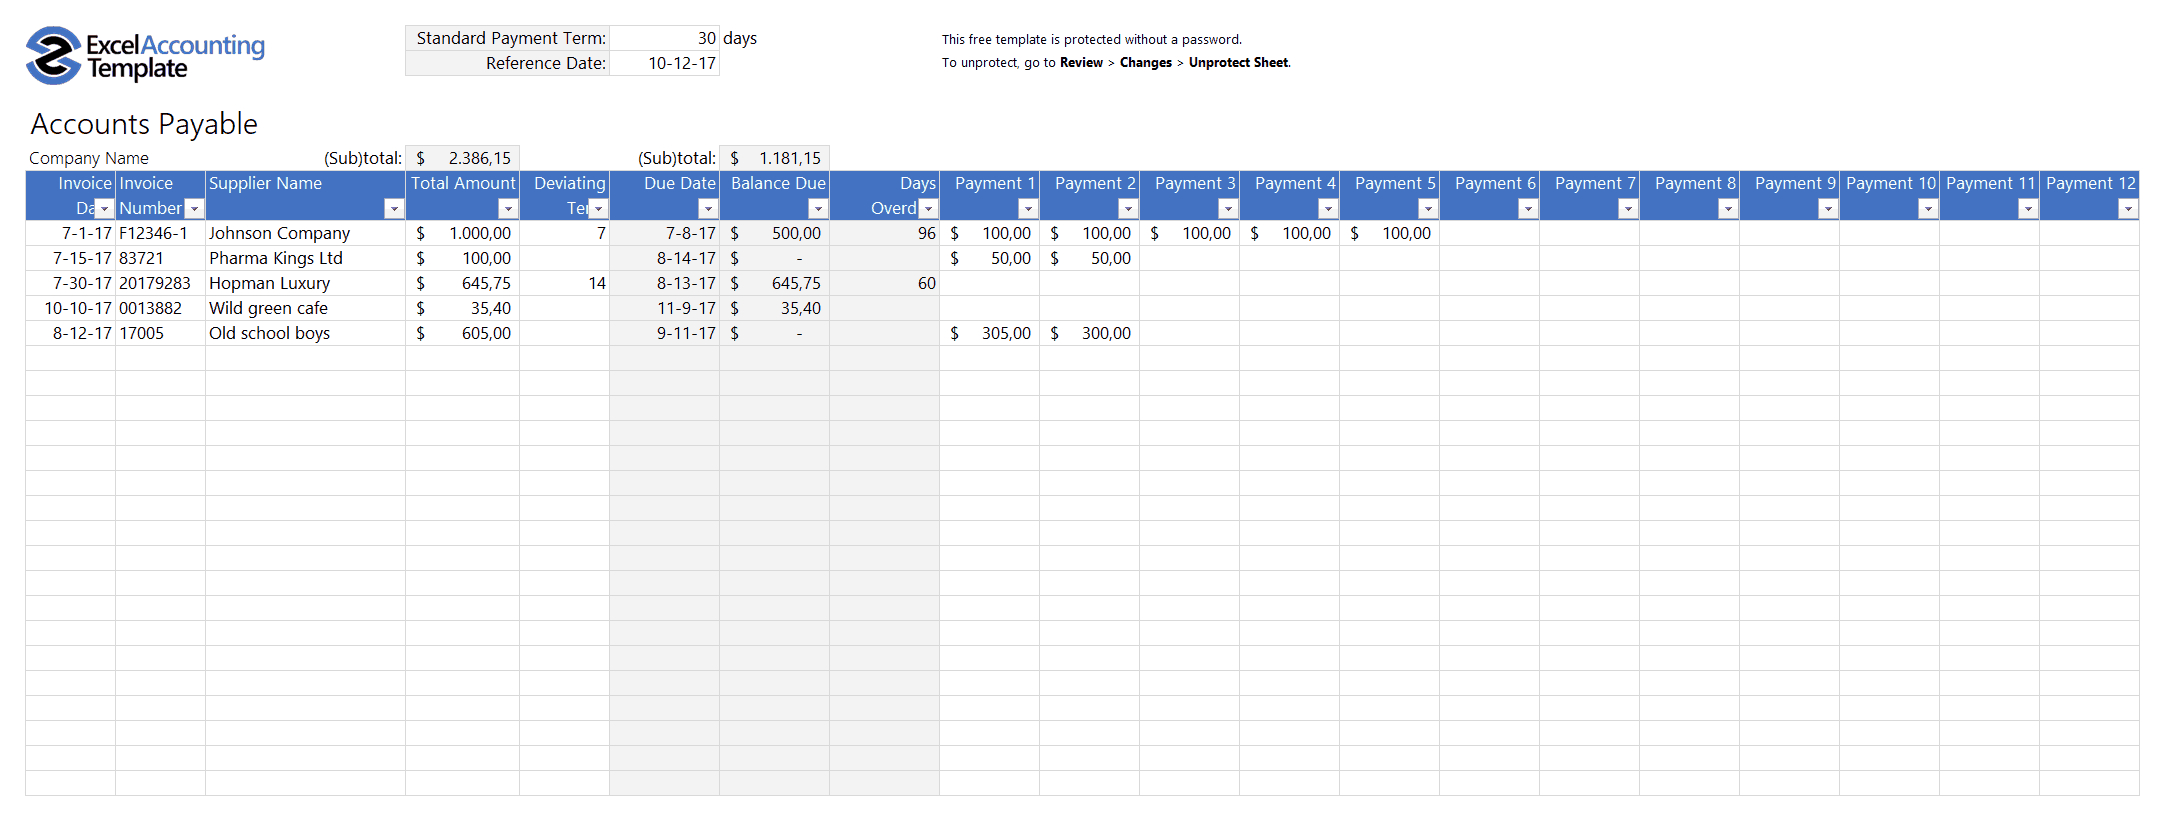 Free Accounting Templates In Excel   Download For Your Business And Excel Templates For Business Accounting